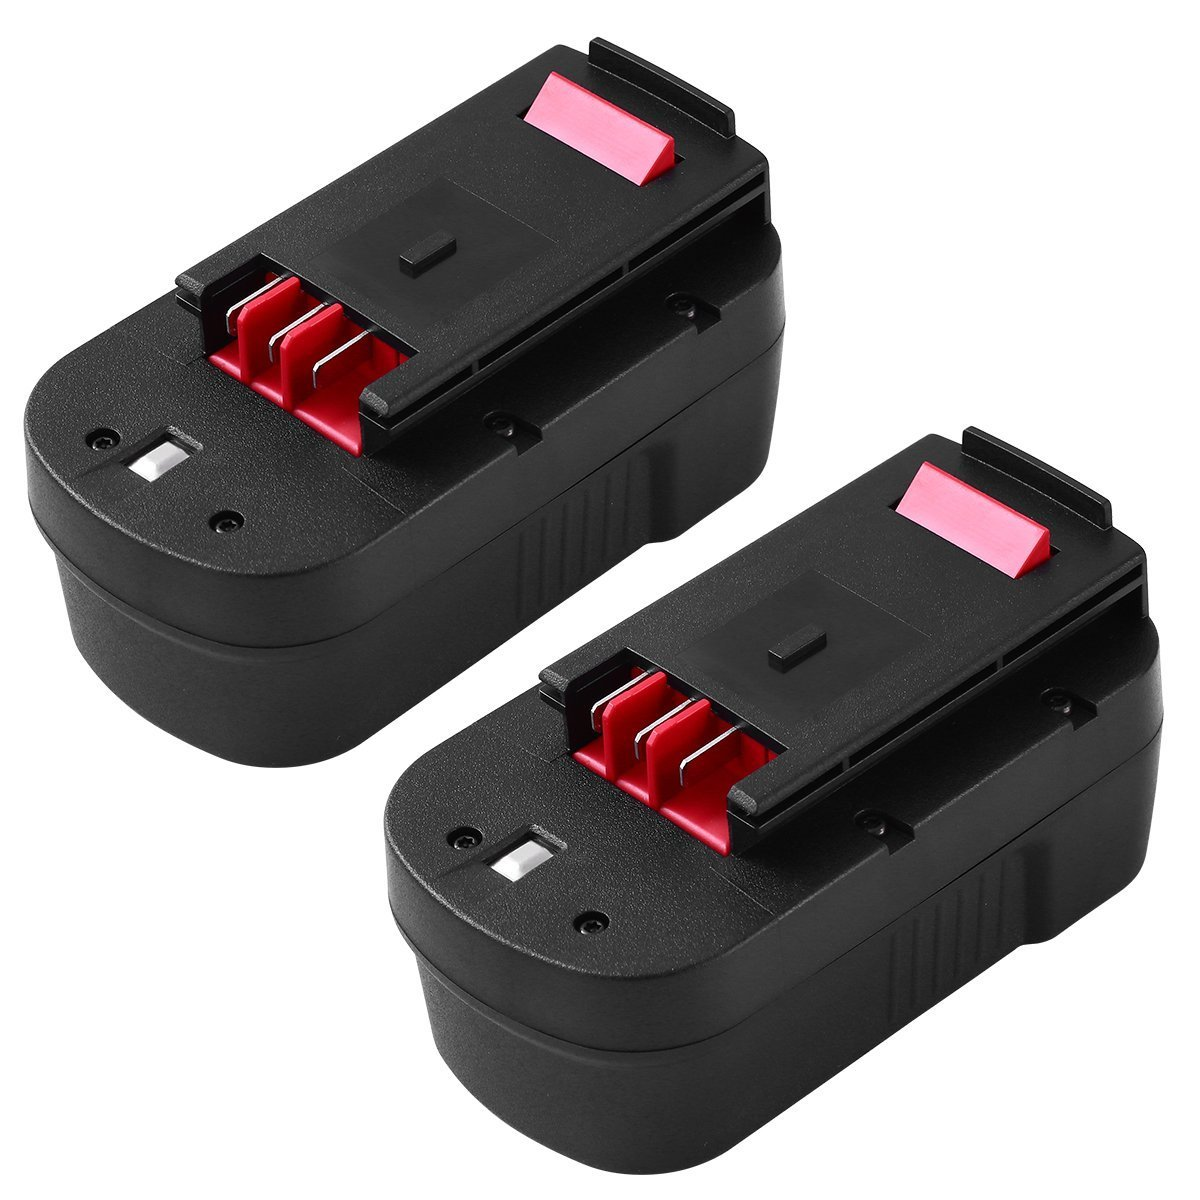 HPB18 3.0Ah Ni-Mh Replace for Black and Decker 18V Battery HPB18-OPE 244760-00 A1718 FEB180S A18 A18E A18NH FS18FL FS180BX FS18BX FSB18 Firestorm Cordless Power Tools - 2 Packs